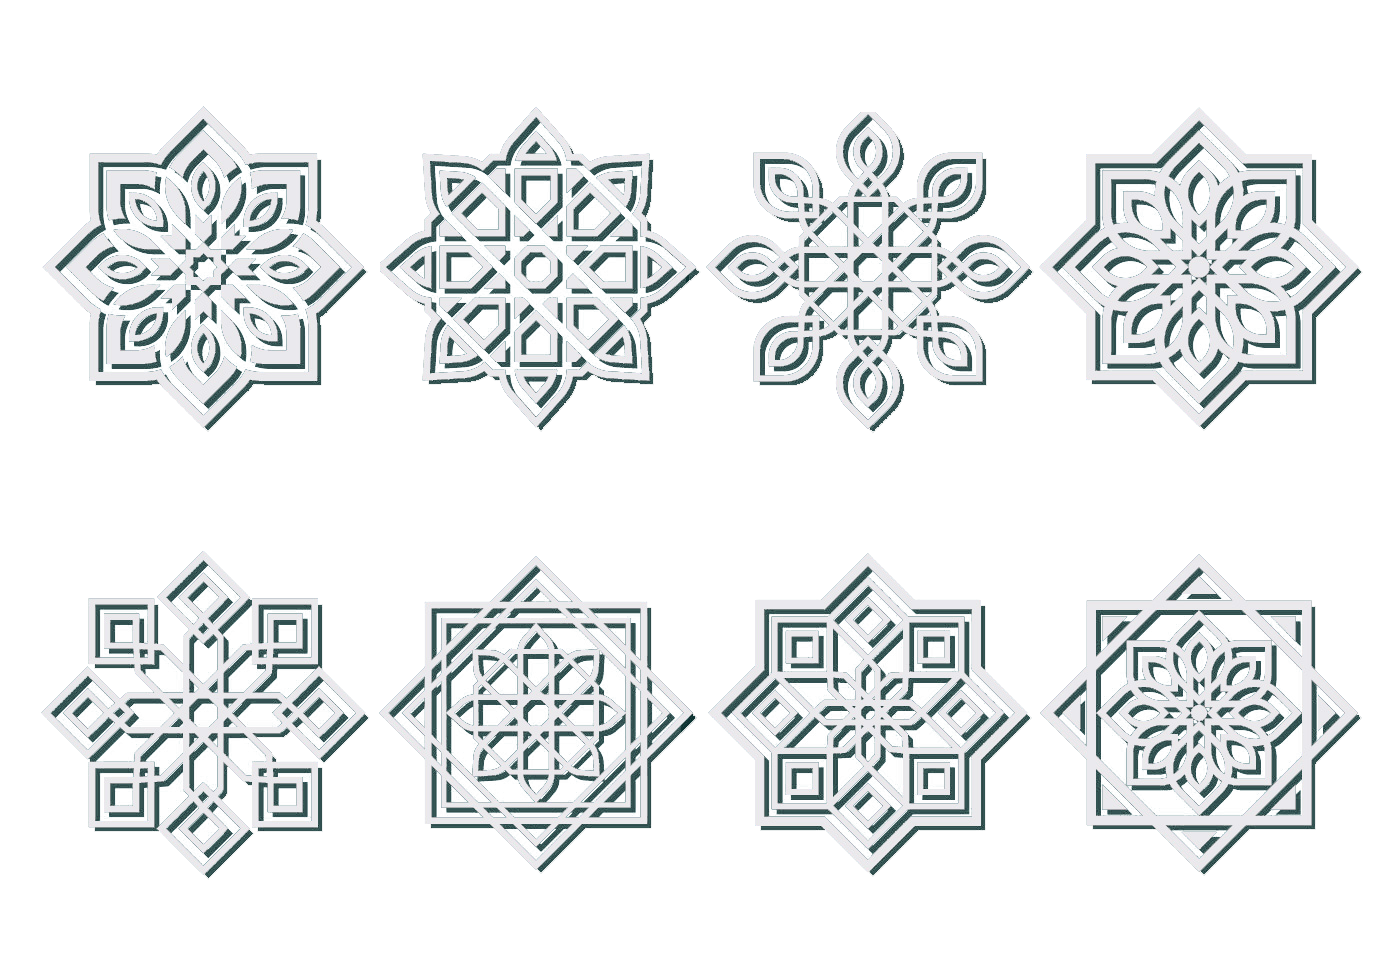 Decoration Islamic Icon Ornament Islam Download Free Image PNG Image